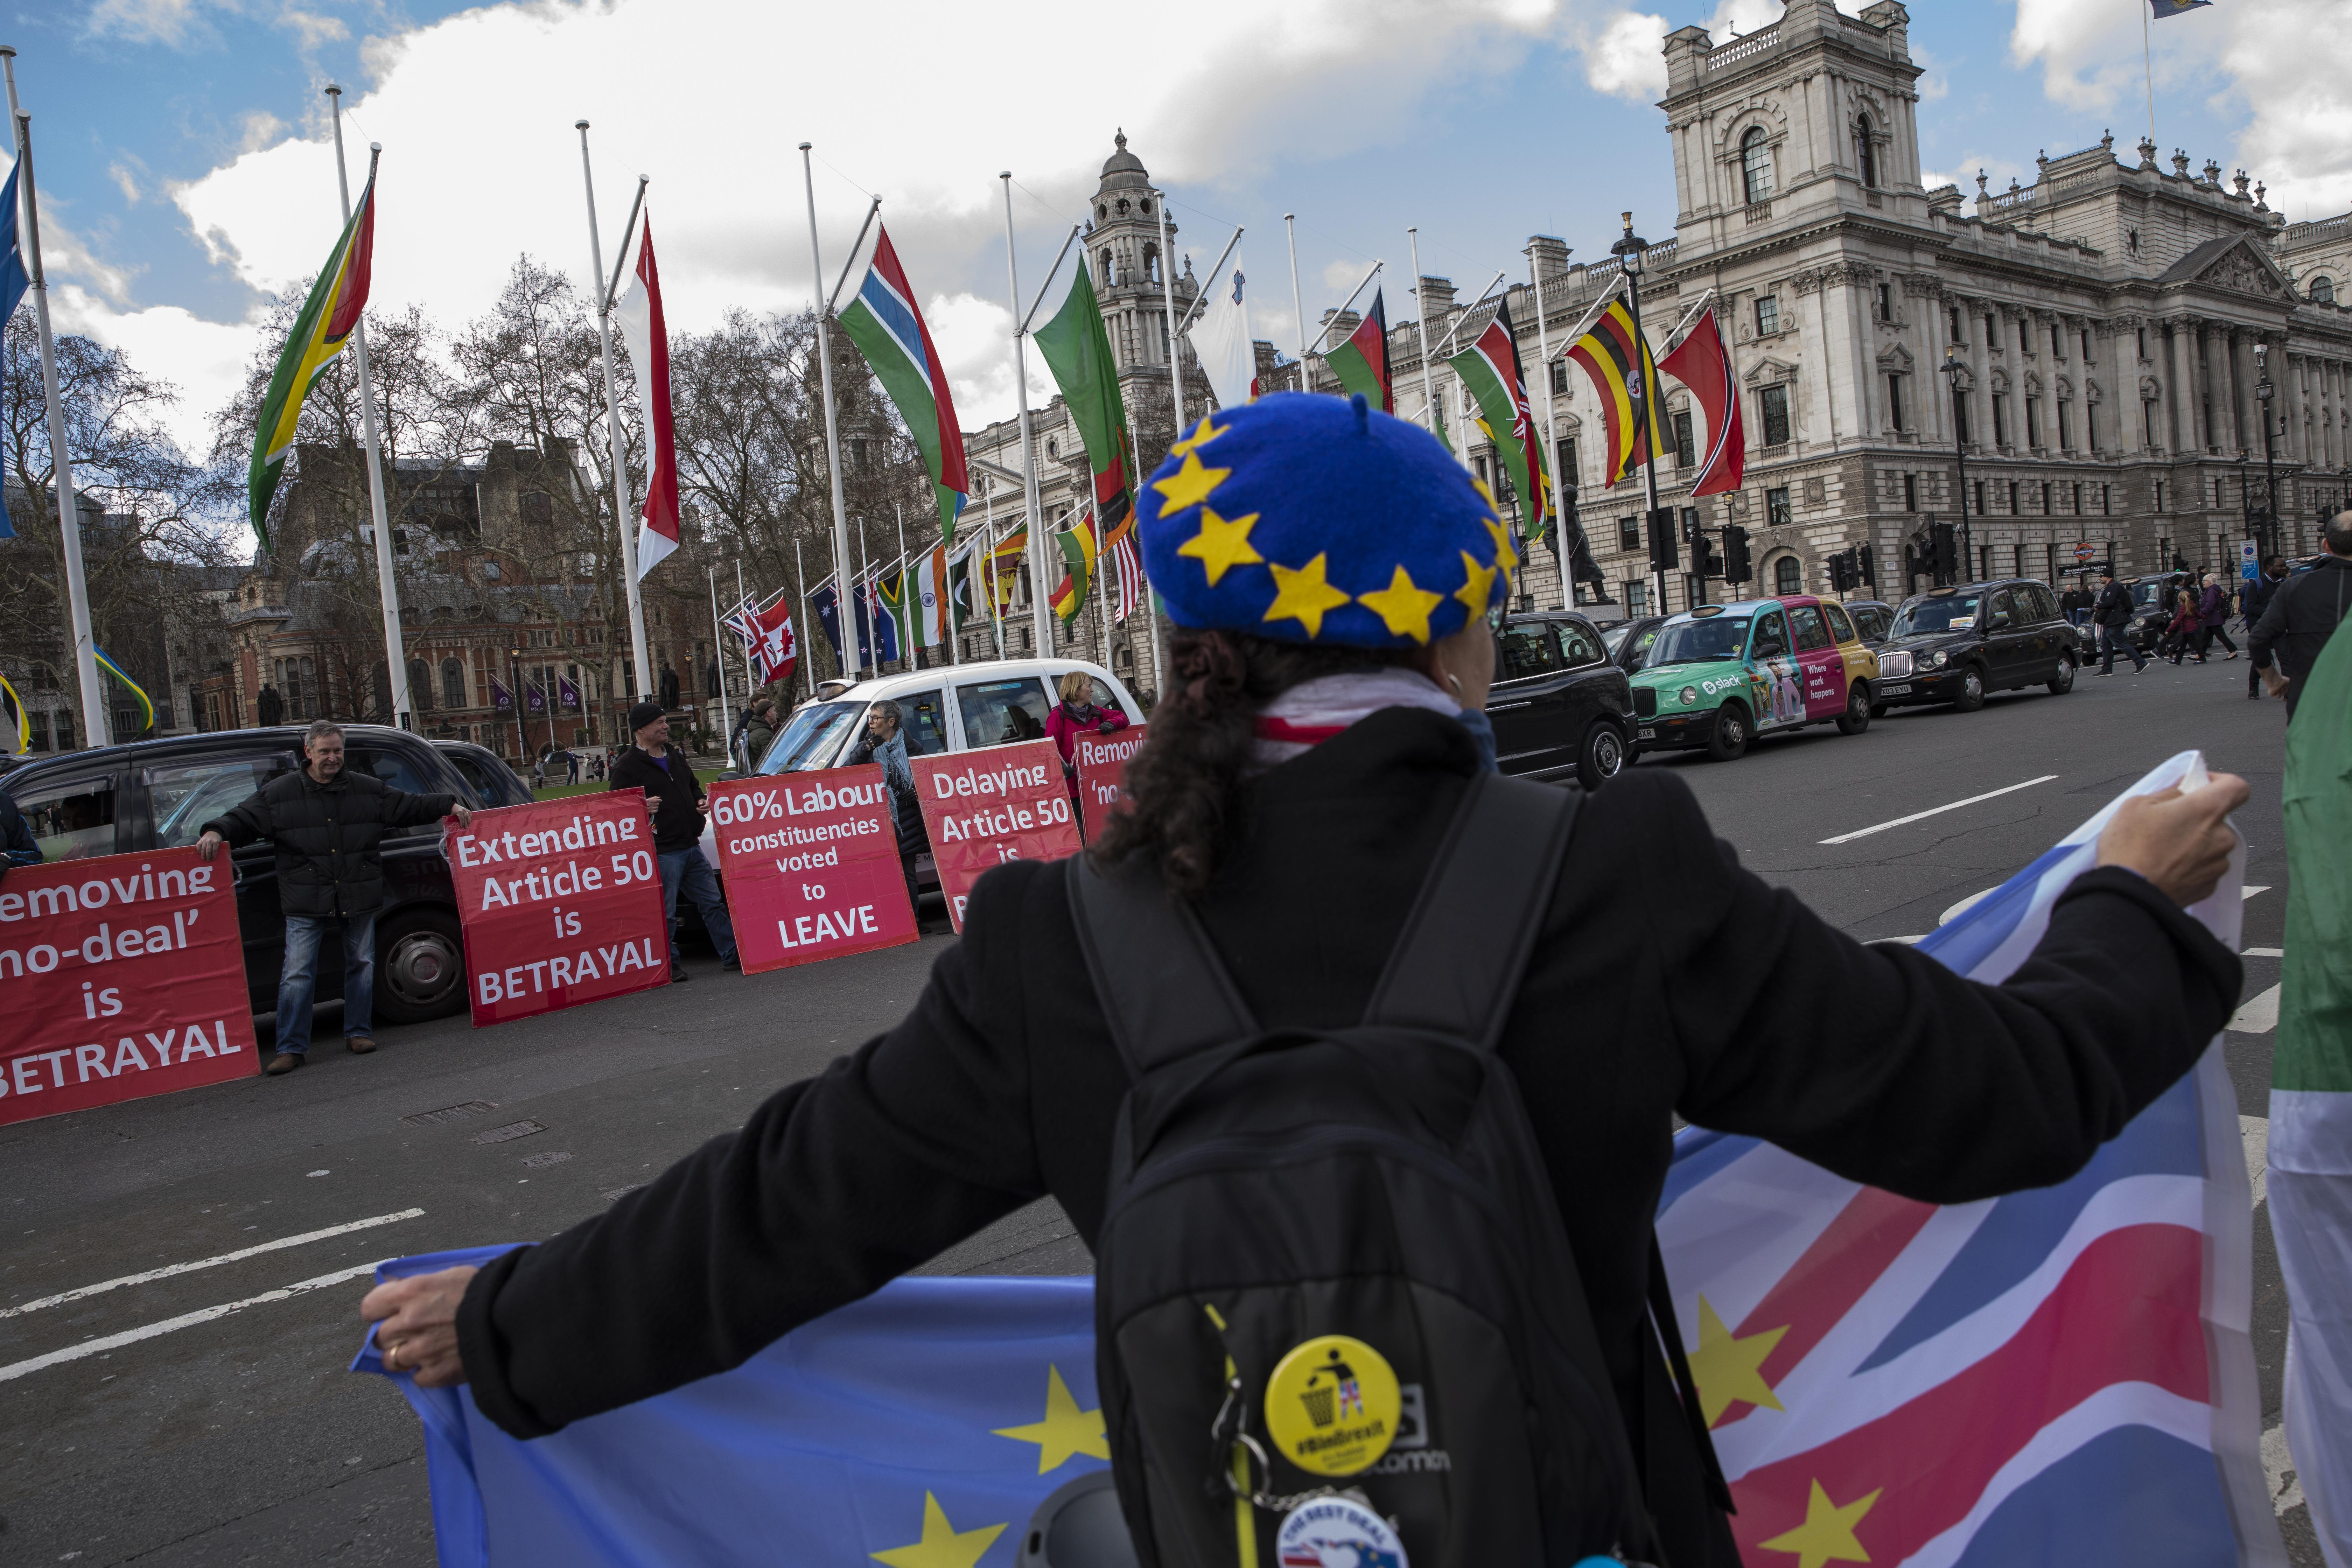 Taxi drivers hold Brexit-themed placards as they stage a Black Cab demo outside the Houses of Parliament in Westminster on Monday in London.